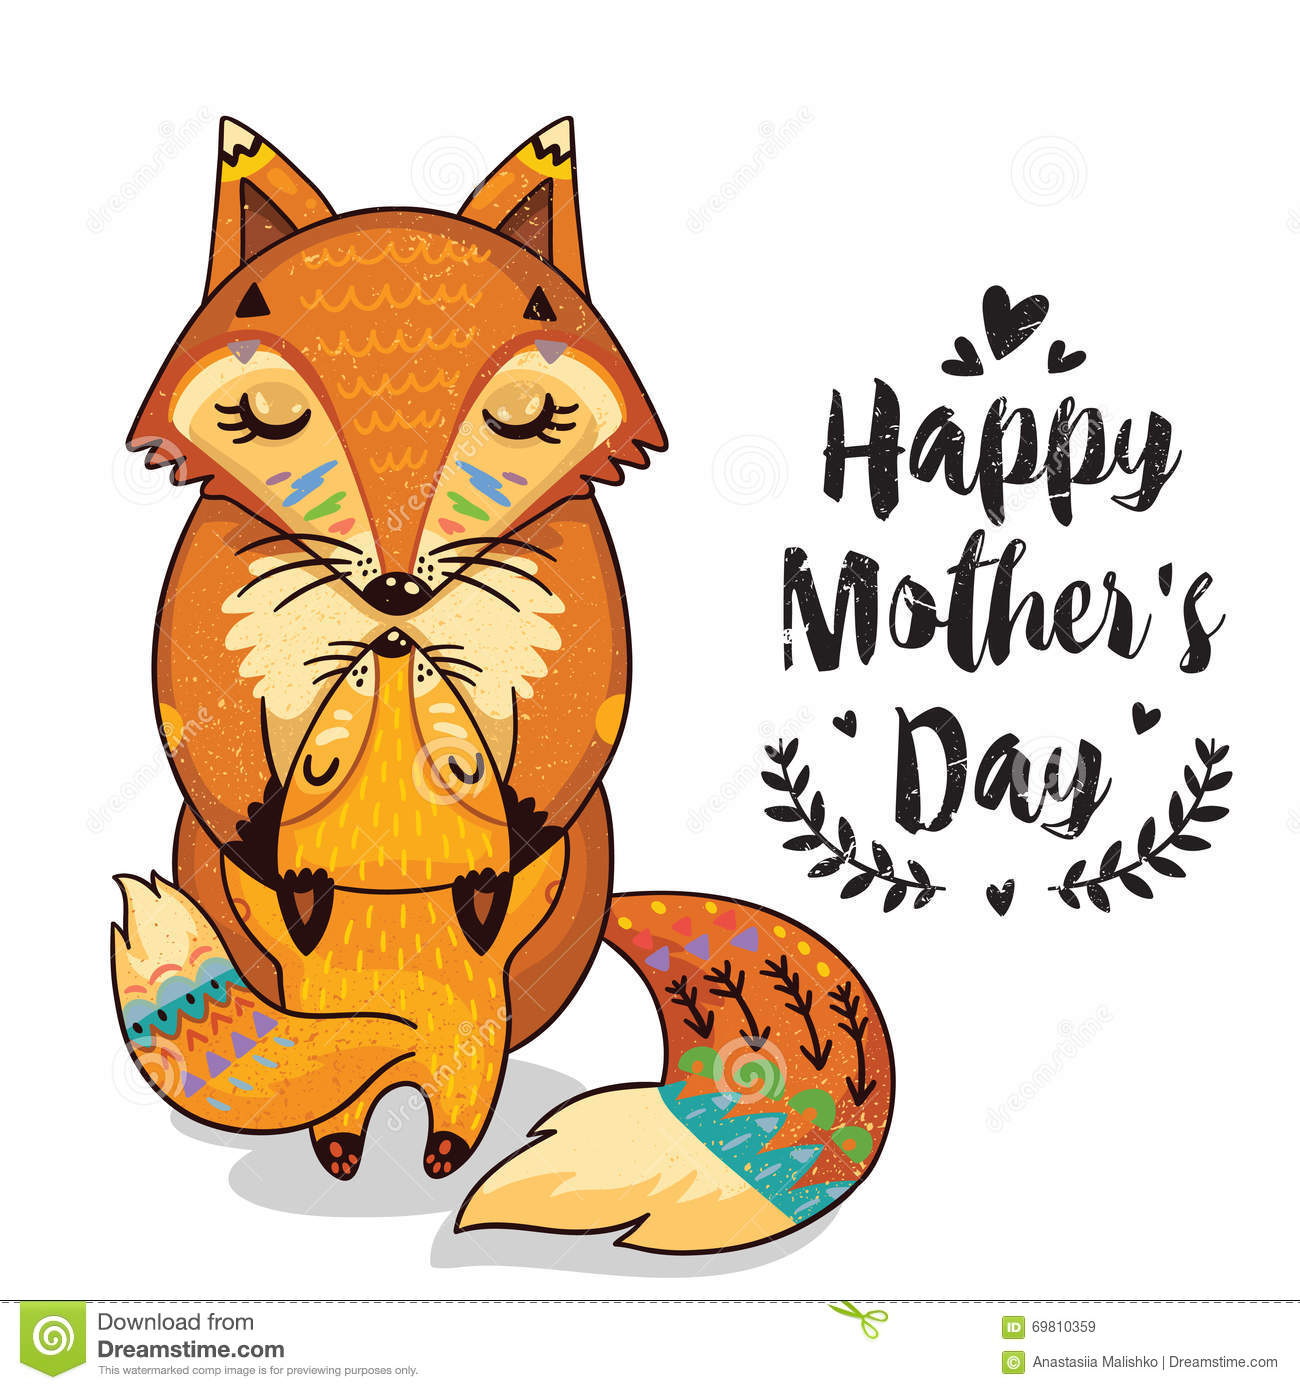 Card for Mothers Day with foxes